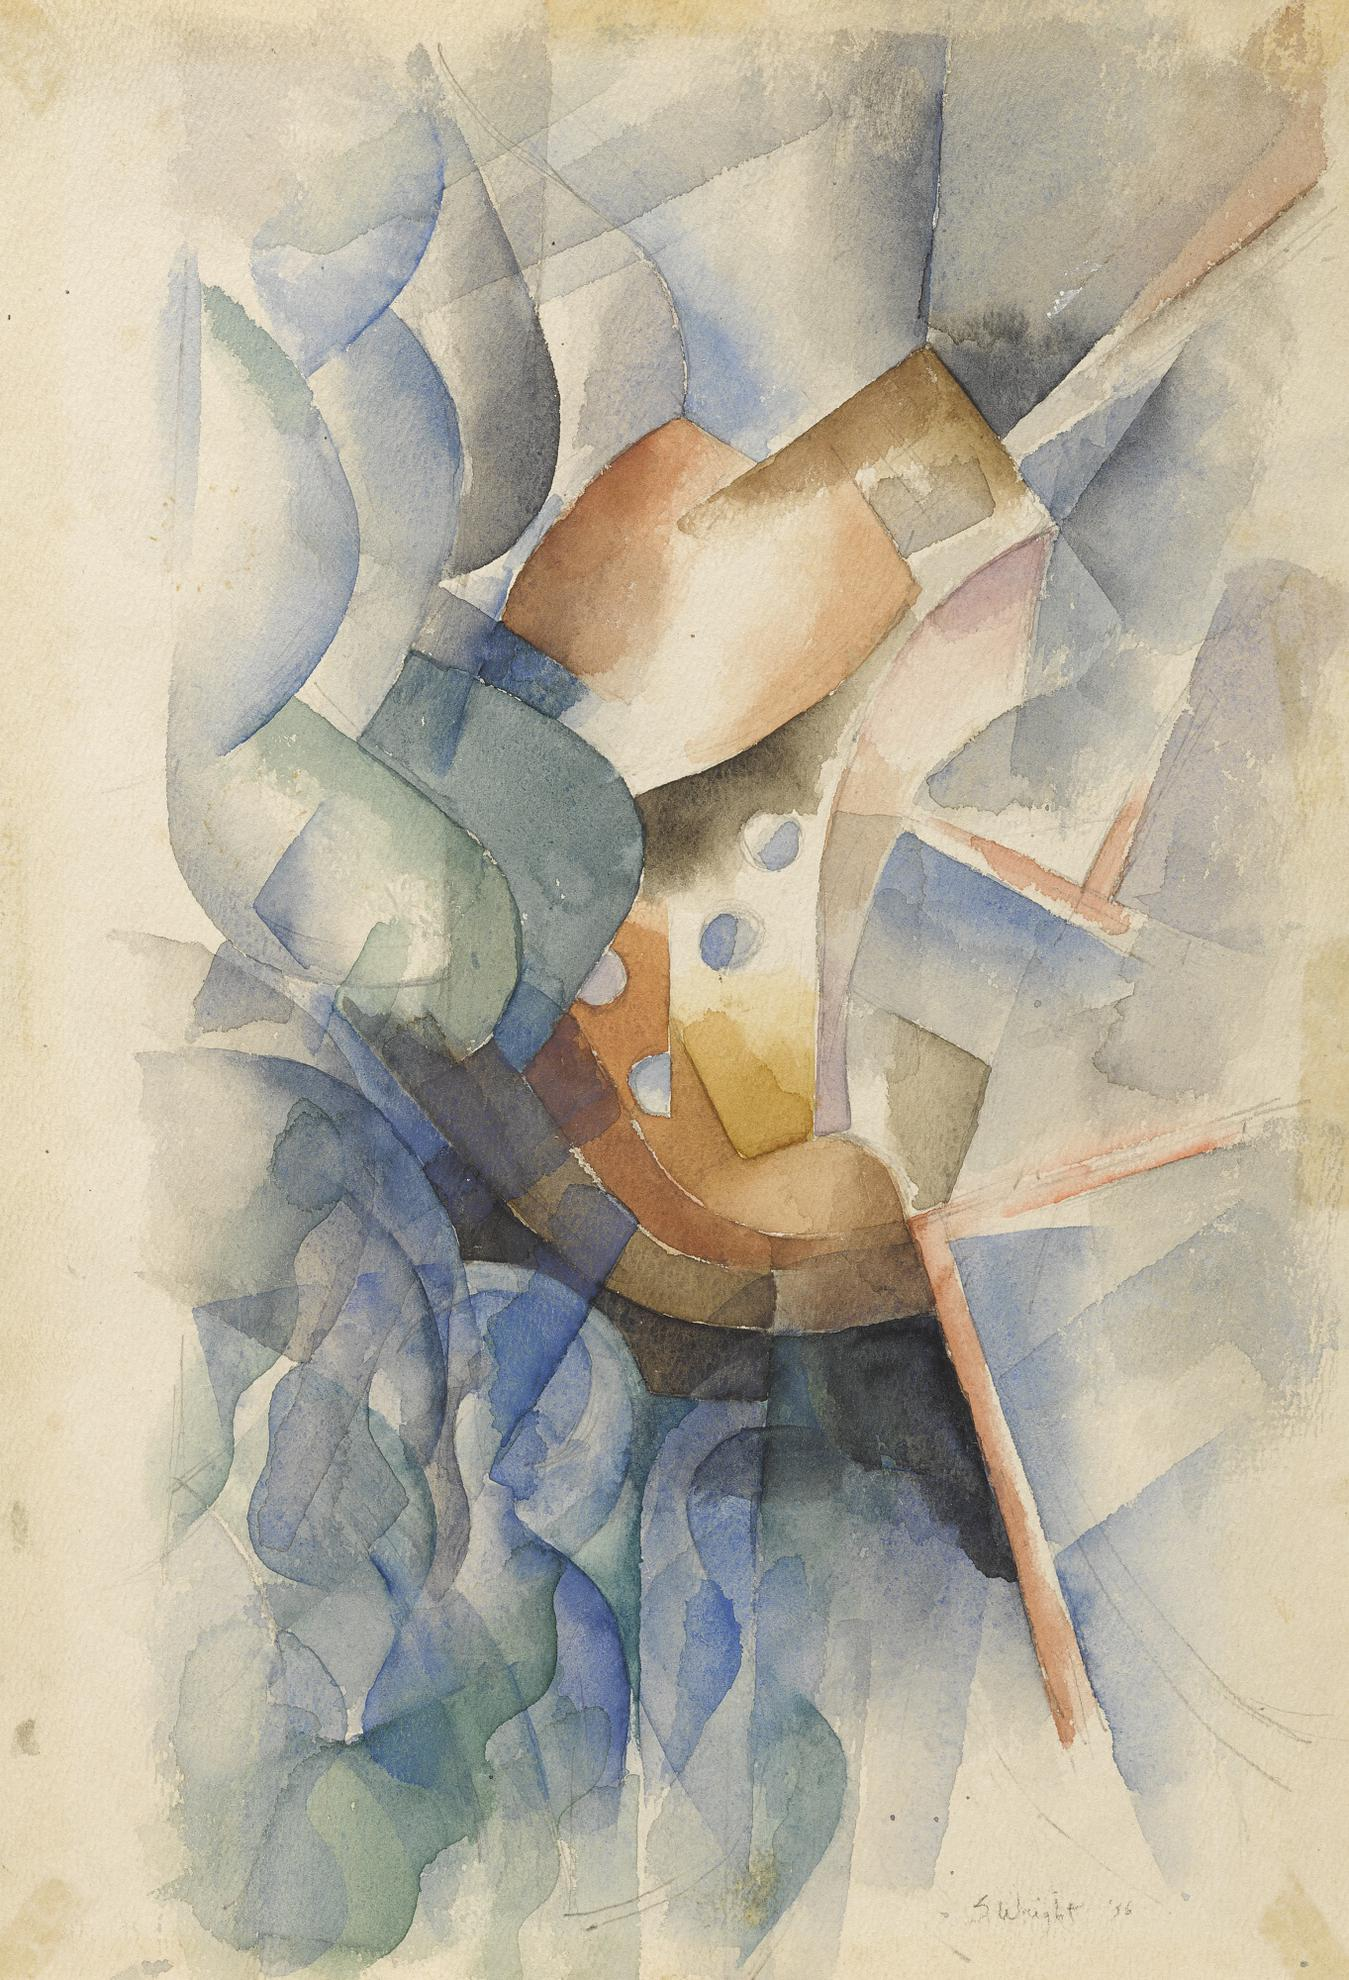 Stanton Macdonald-Wright - Sychromatist Abstraction-1956